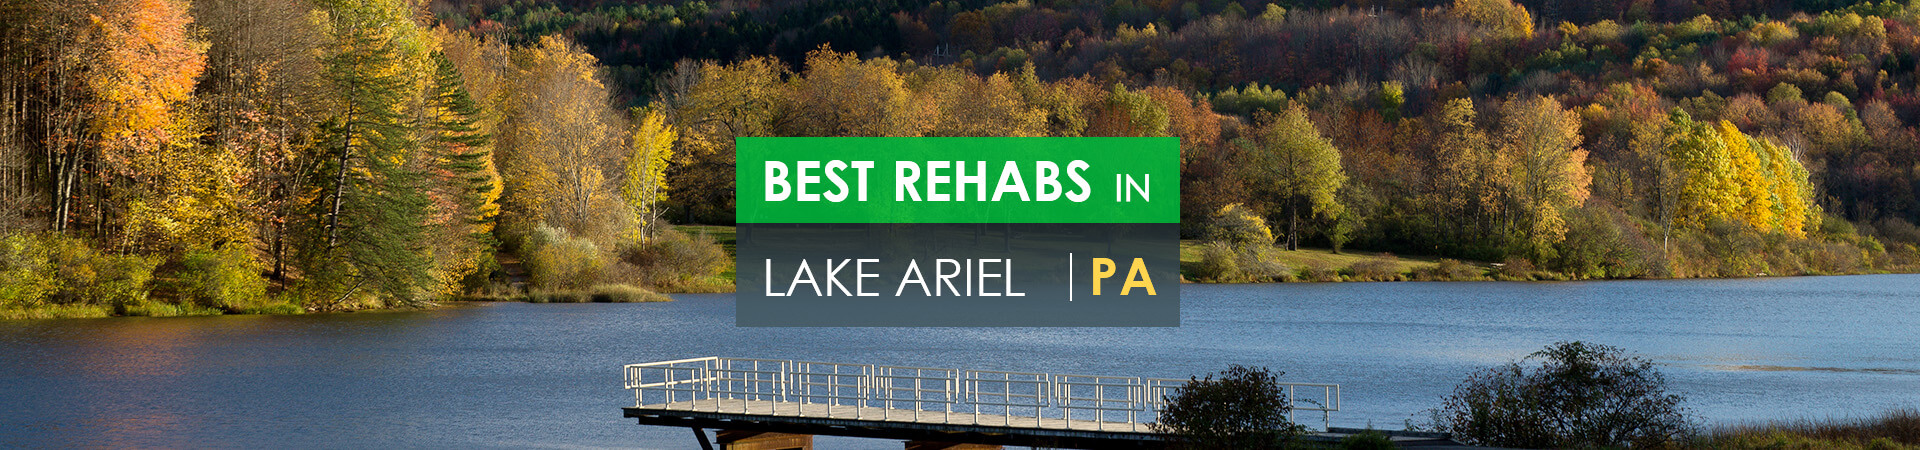 Best rehabs in Lake Ariel, PA